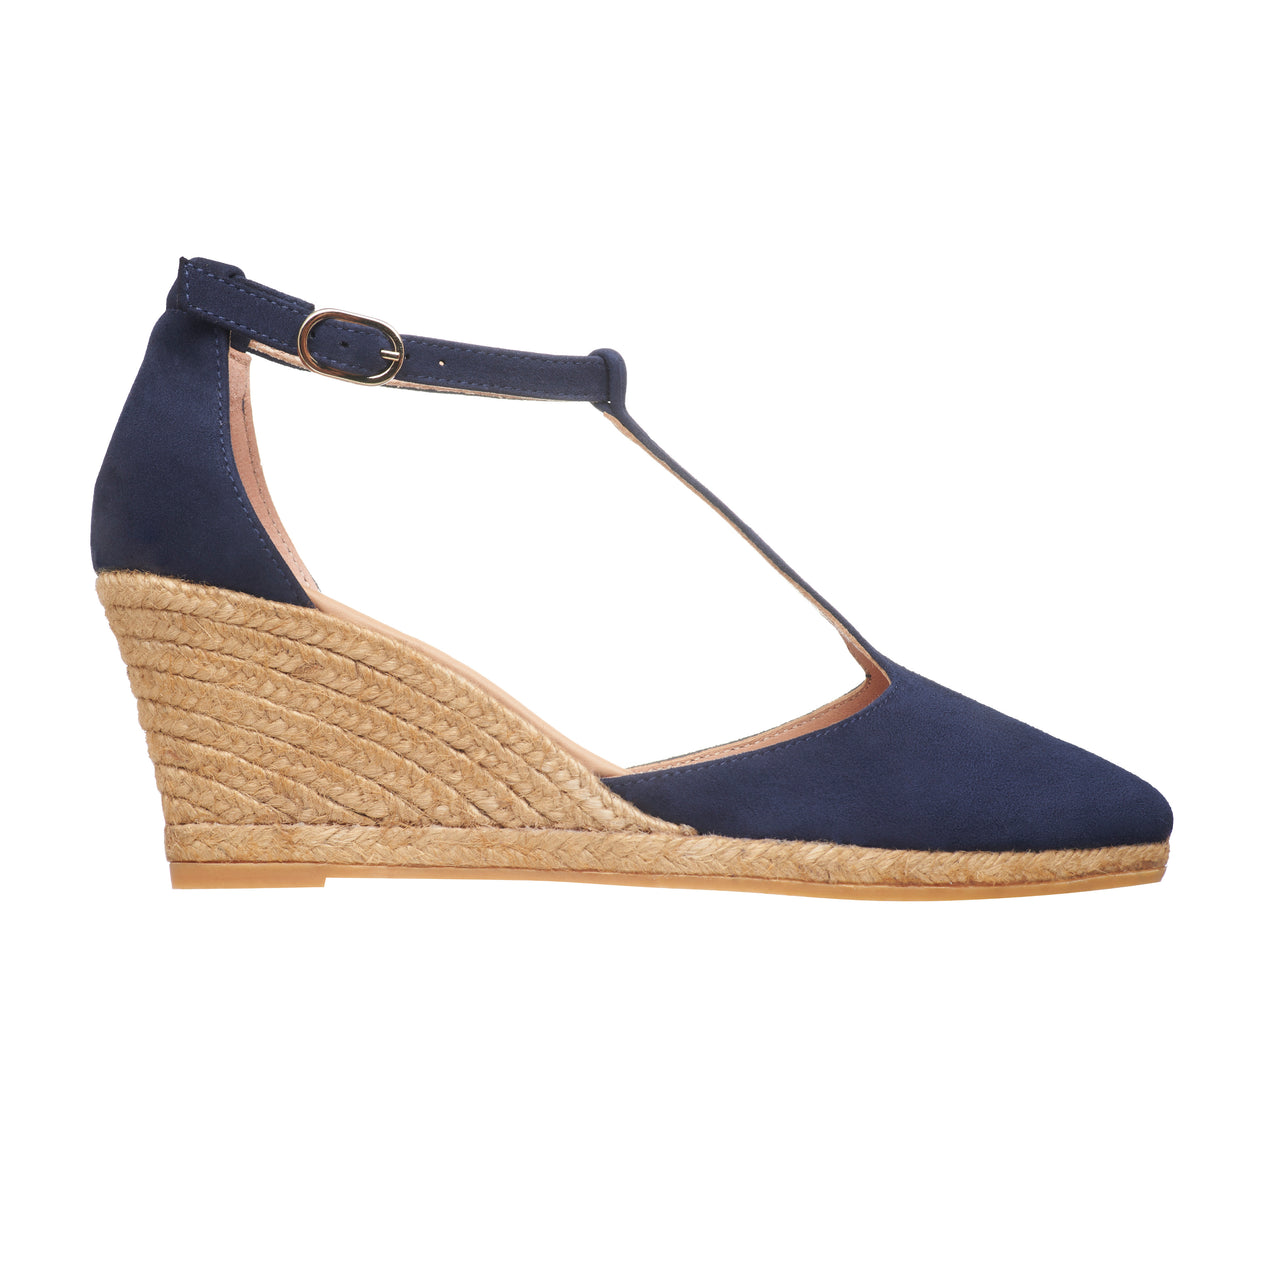 TUREIS Midnight Blue espadrilles